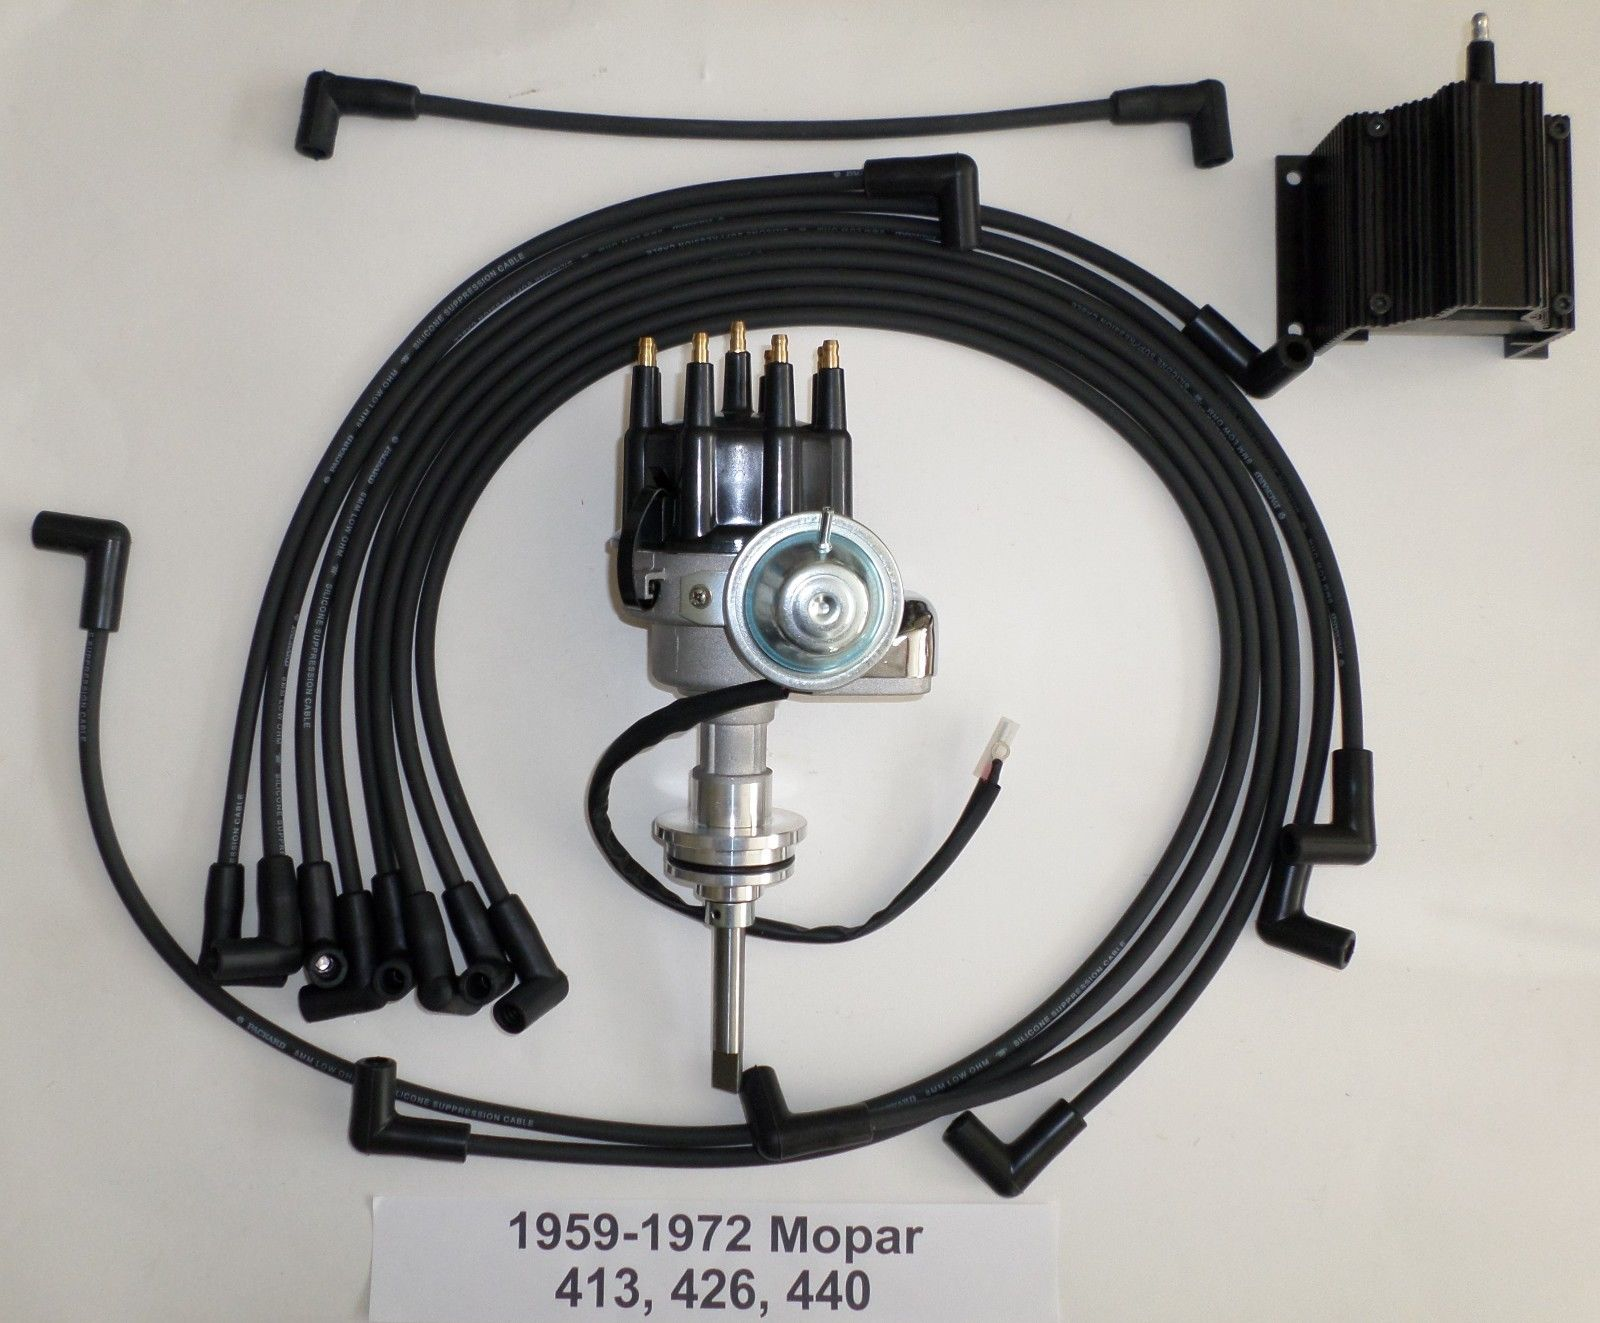 chrysler 440 distributor wiring mopar 413 426 440 black small cap hei distributor  50k coil  mopar 413 426 440 black small cap hei